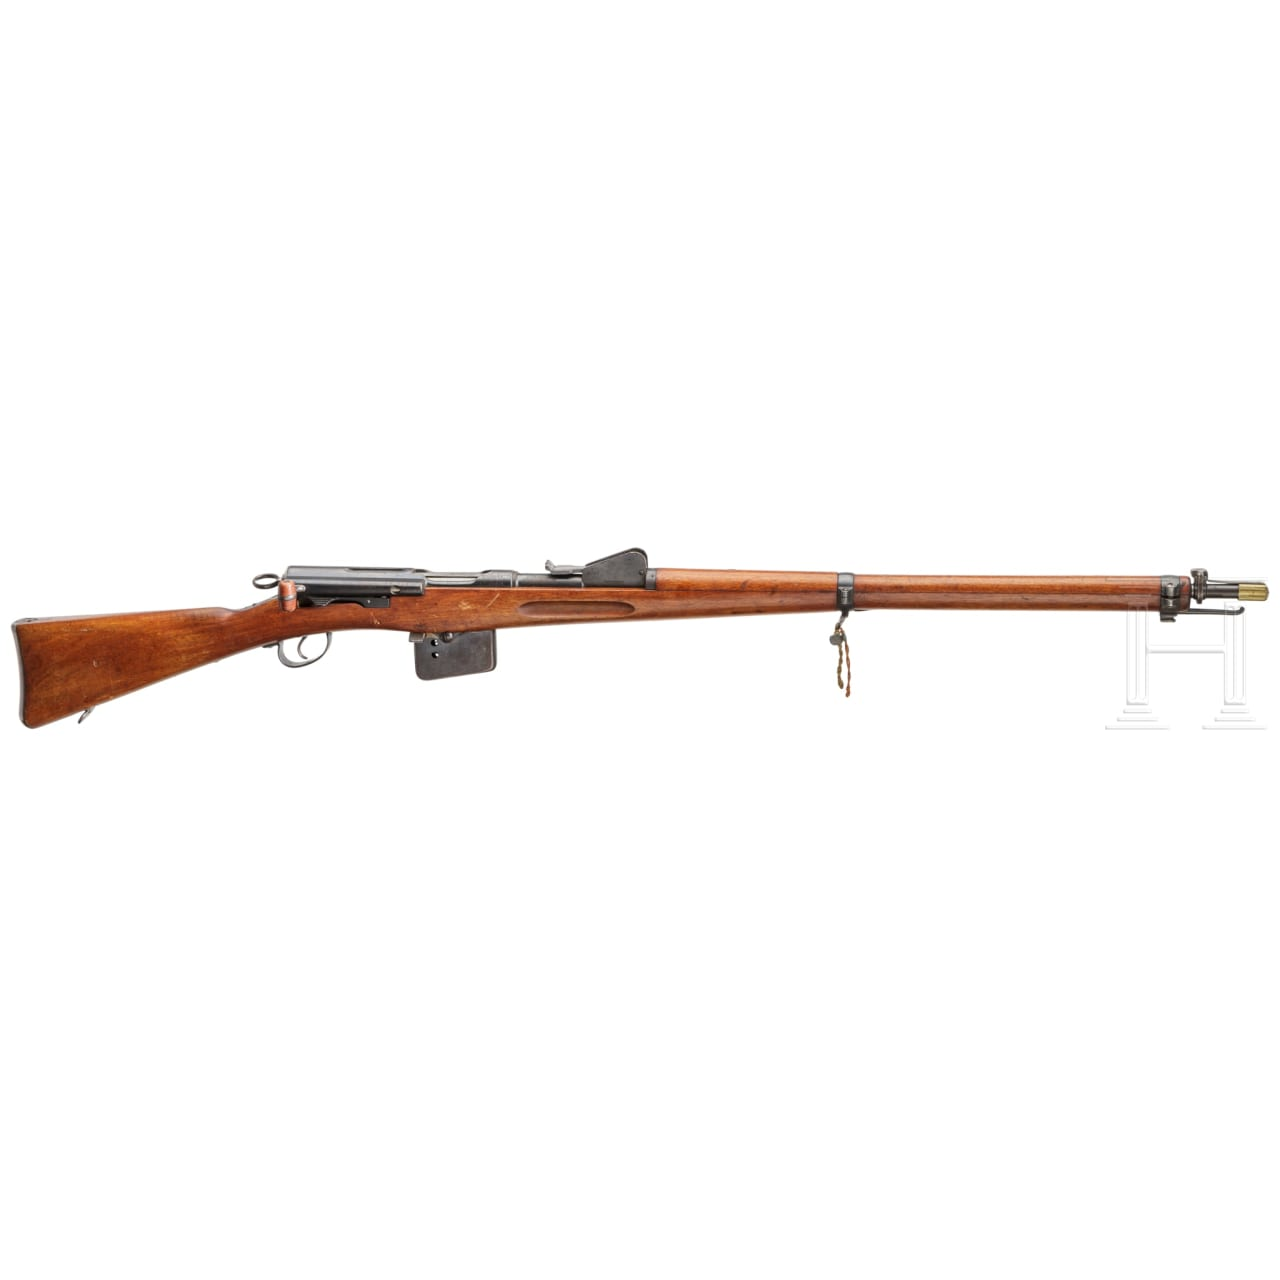 A Swiss M 1889 rifle